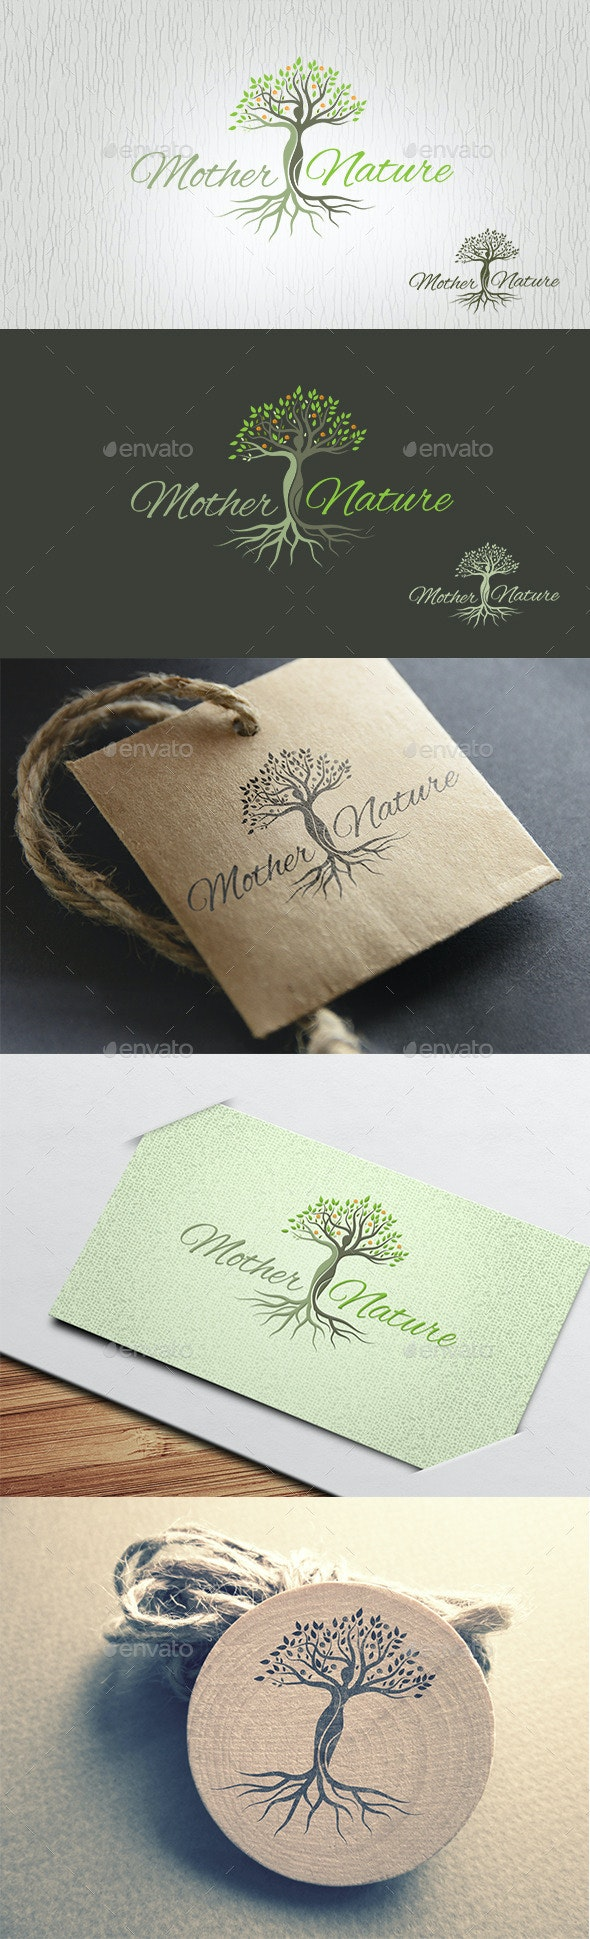 Mother Nature Logo - Nature Logo Templates